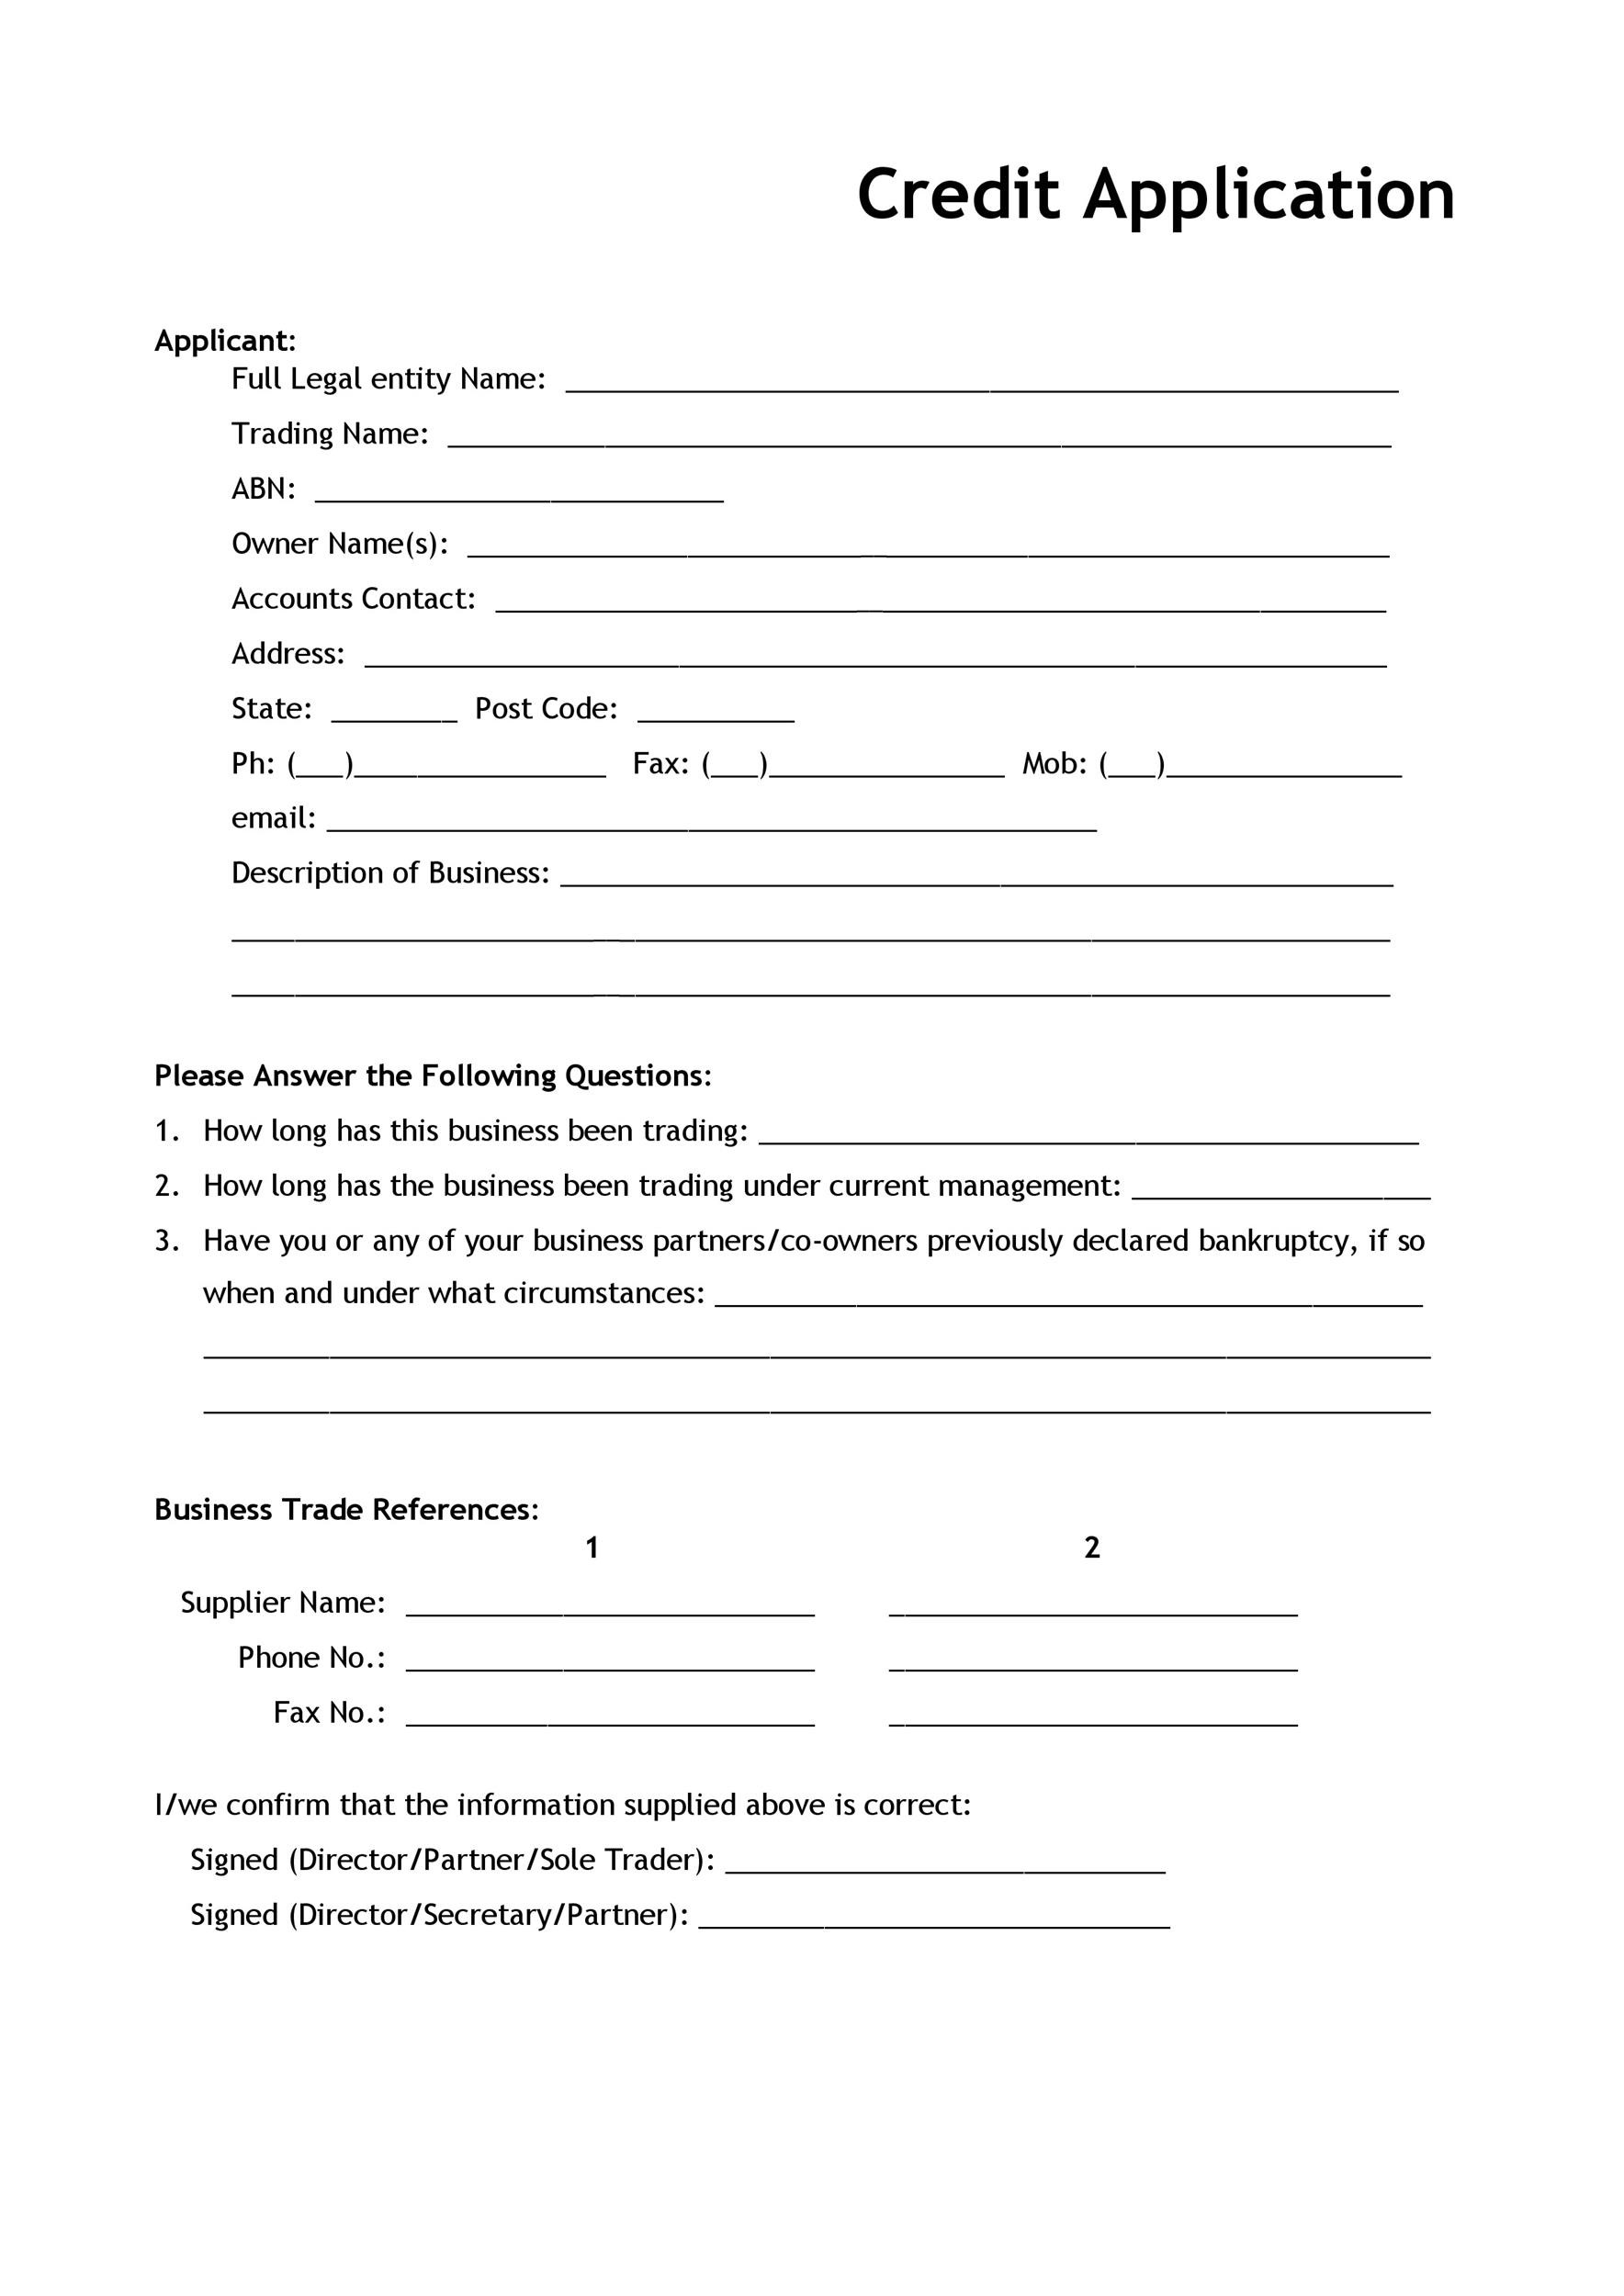 Credit Application Form 40